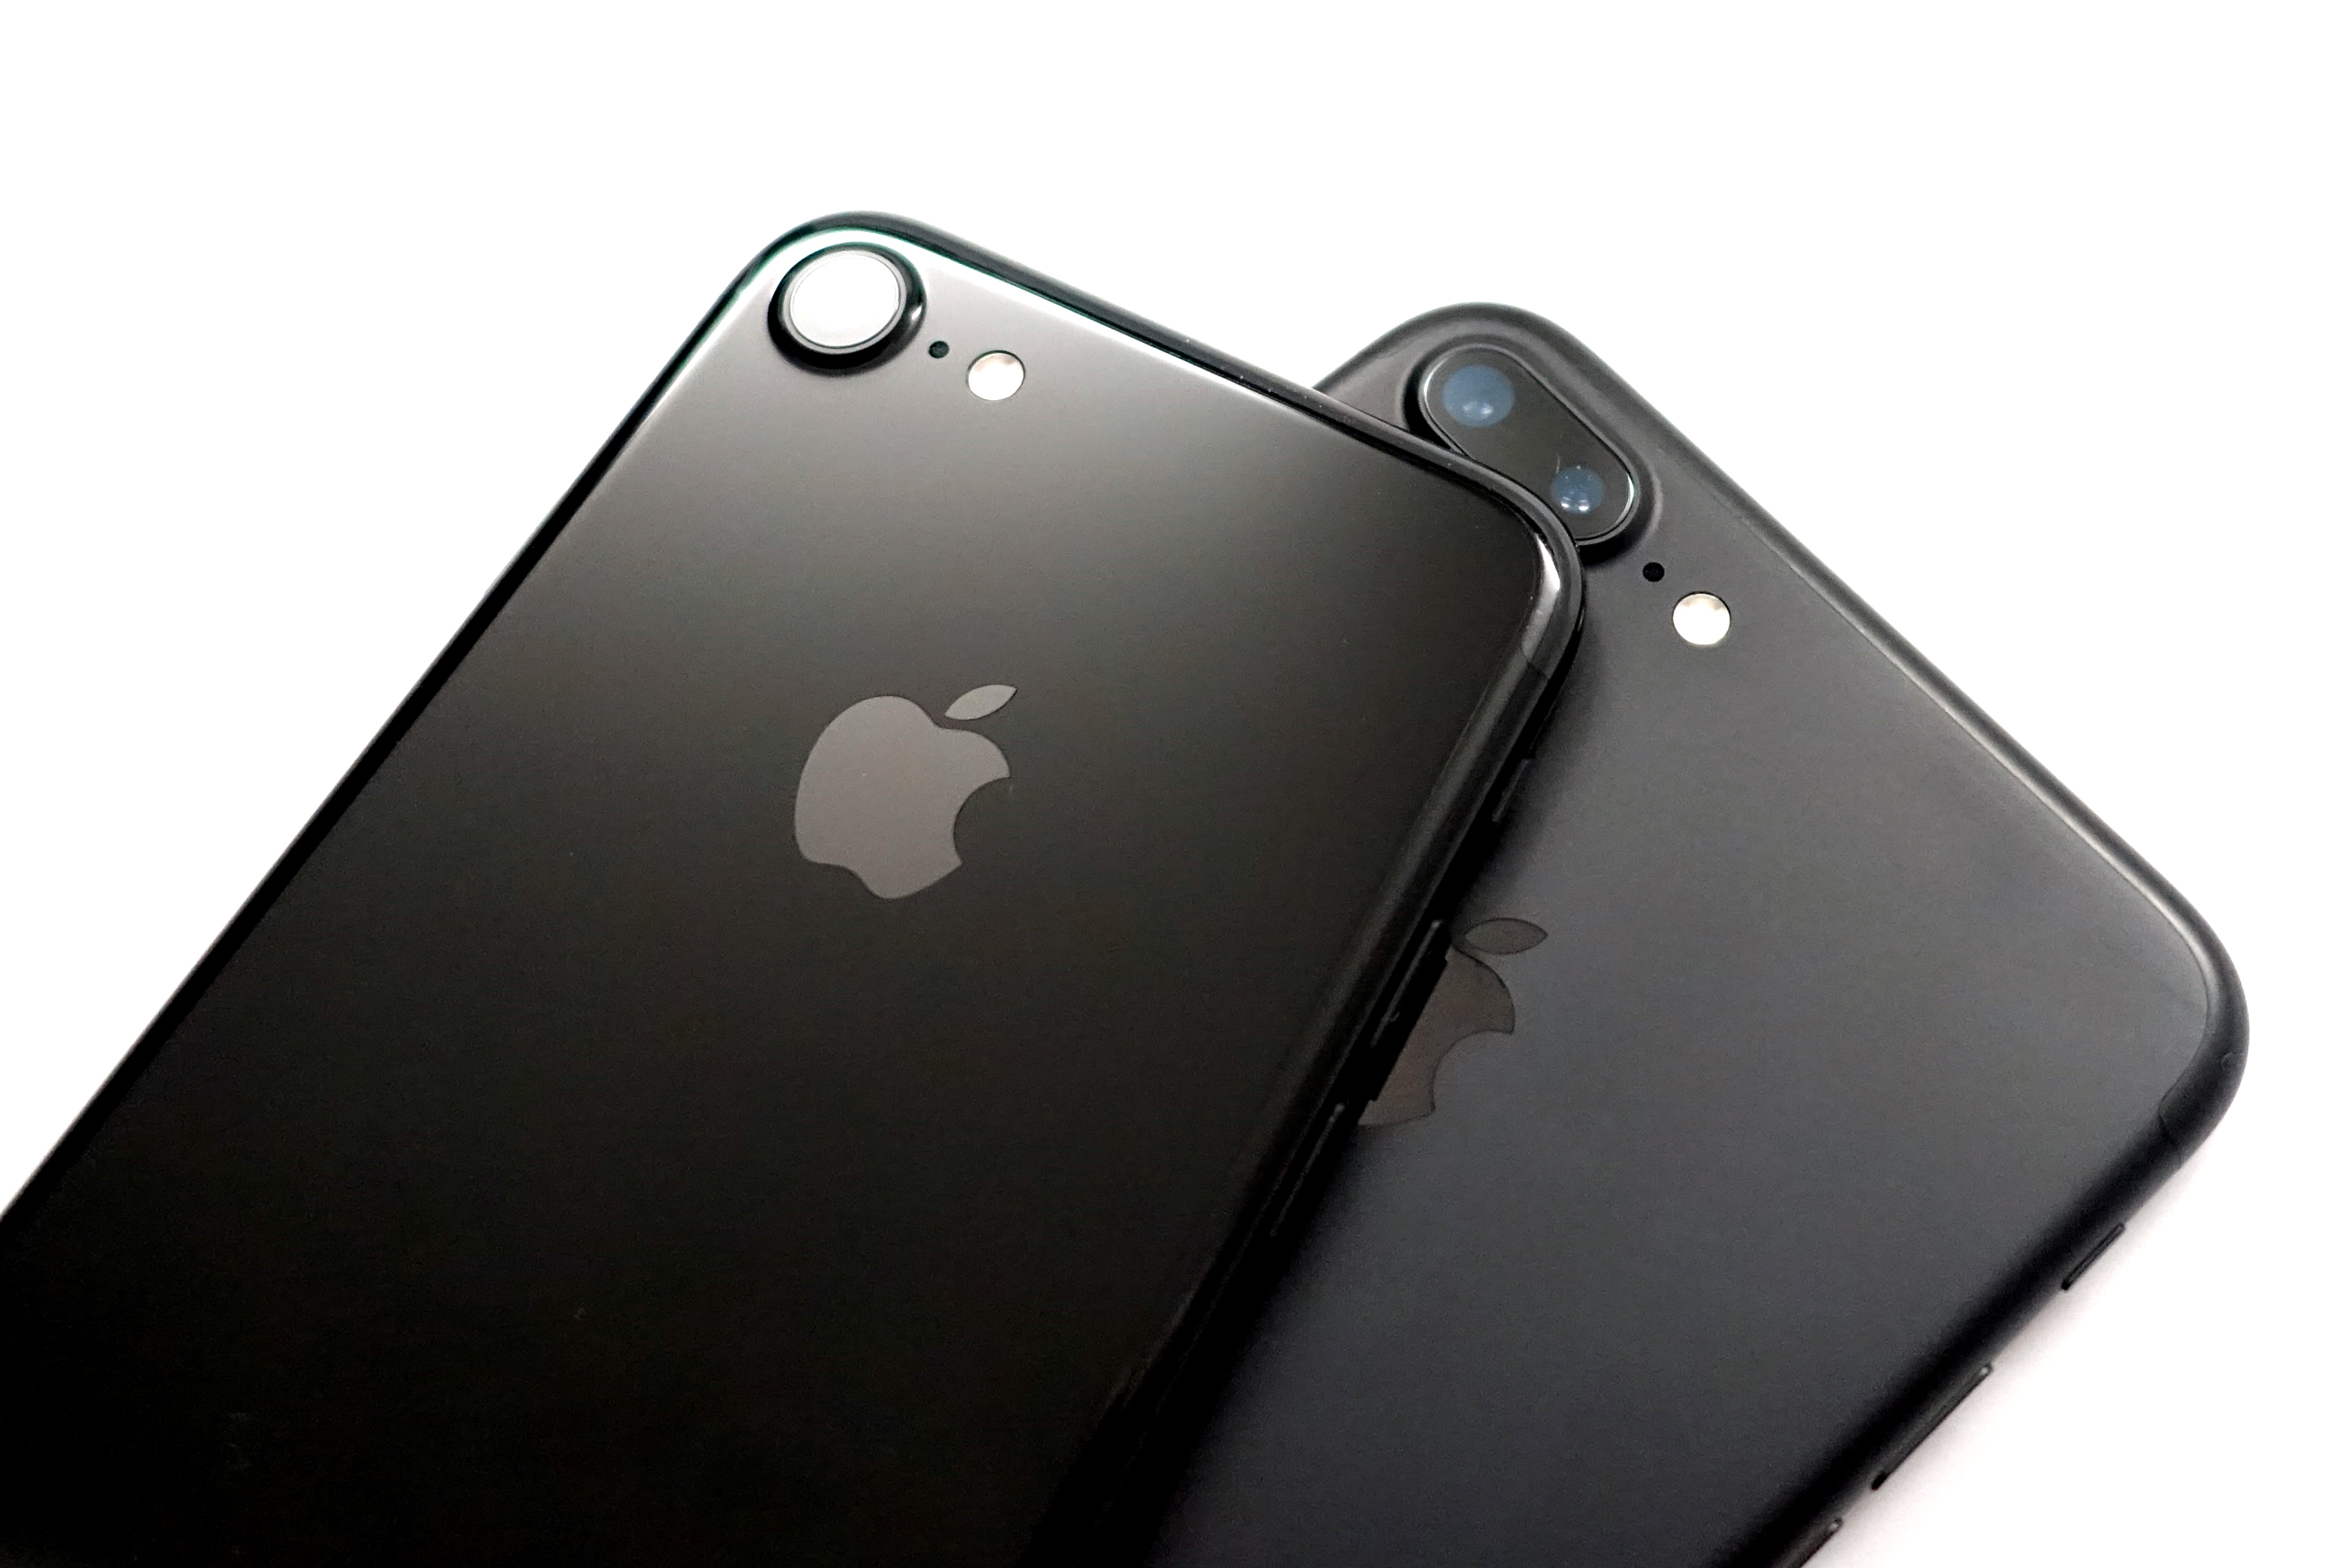 Iphone 7 Problems 5 Things You Need To Know Apple Plus 256gb Inter